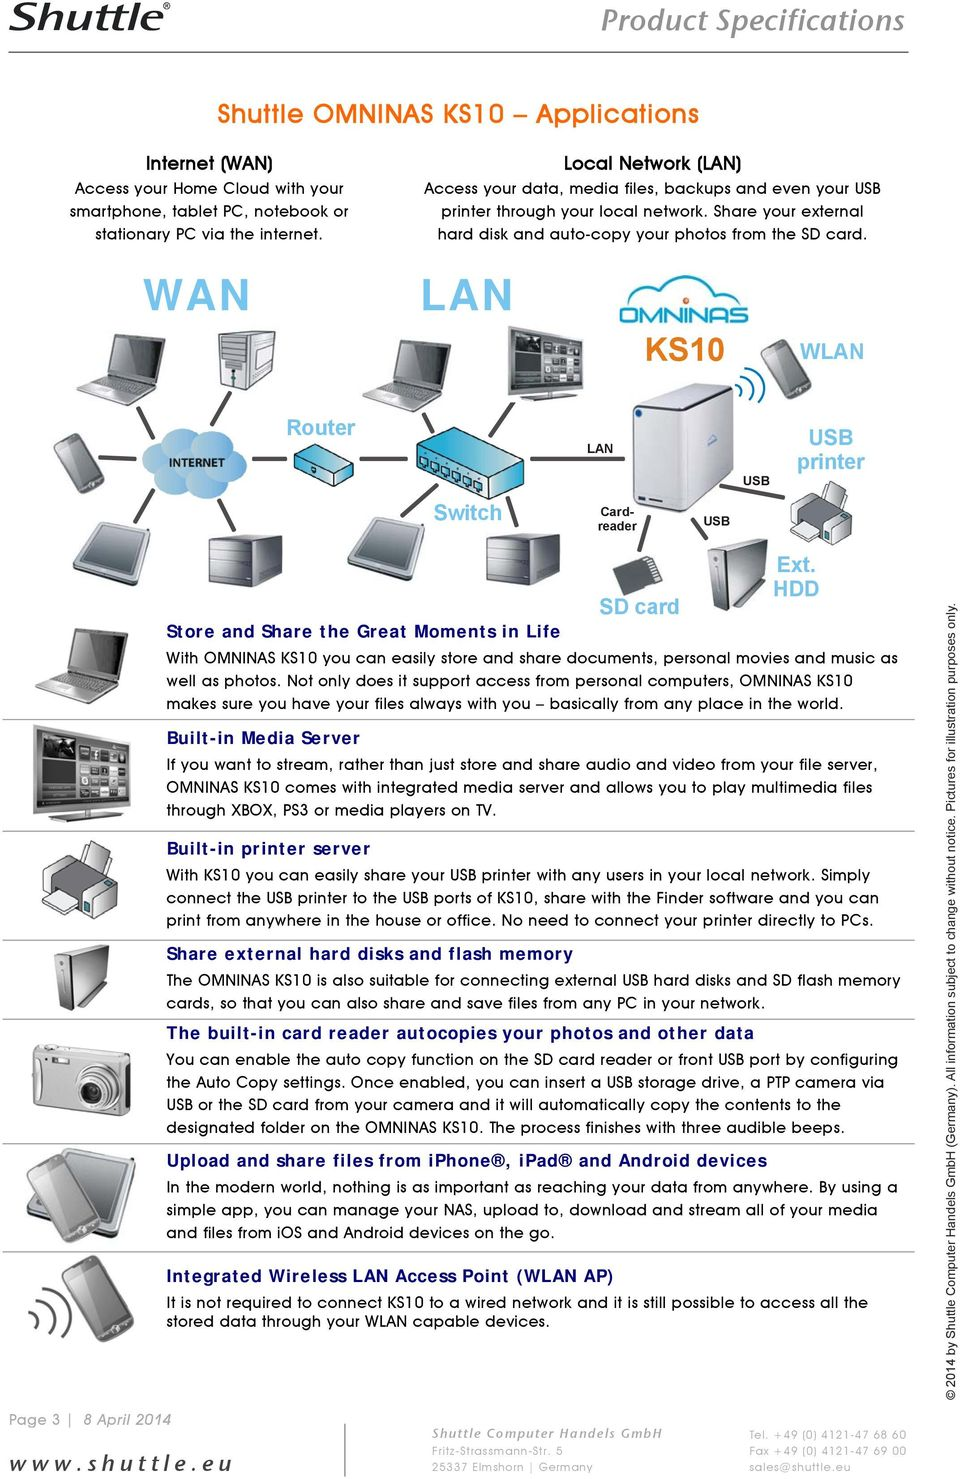 WAN LAN KS10 WLAN Router LAN printer Switch Cardreader Store and Share the Great Moments in Life SD card Ext.